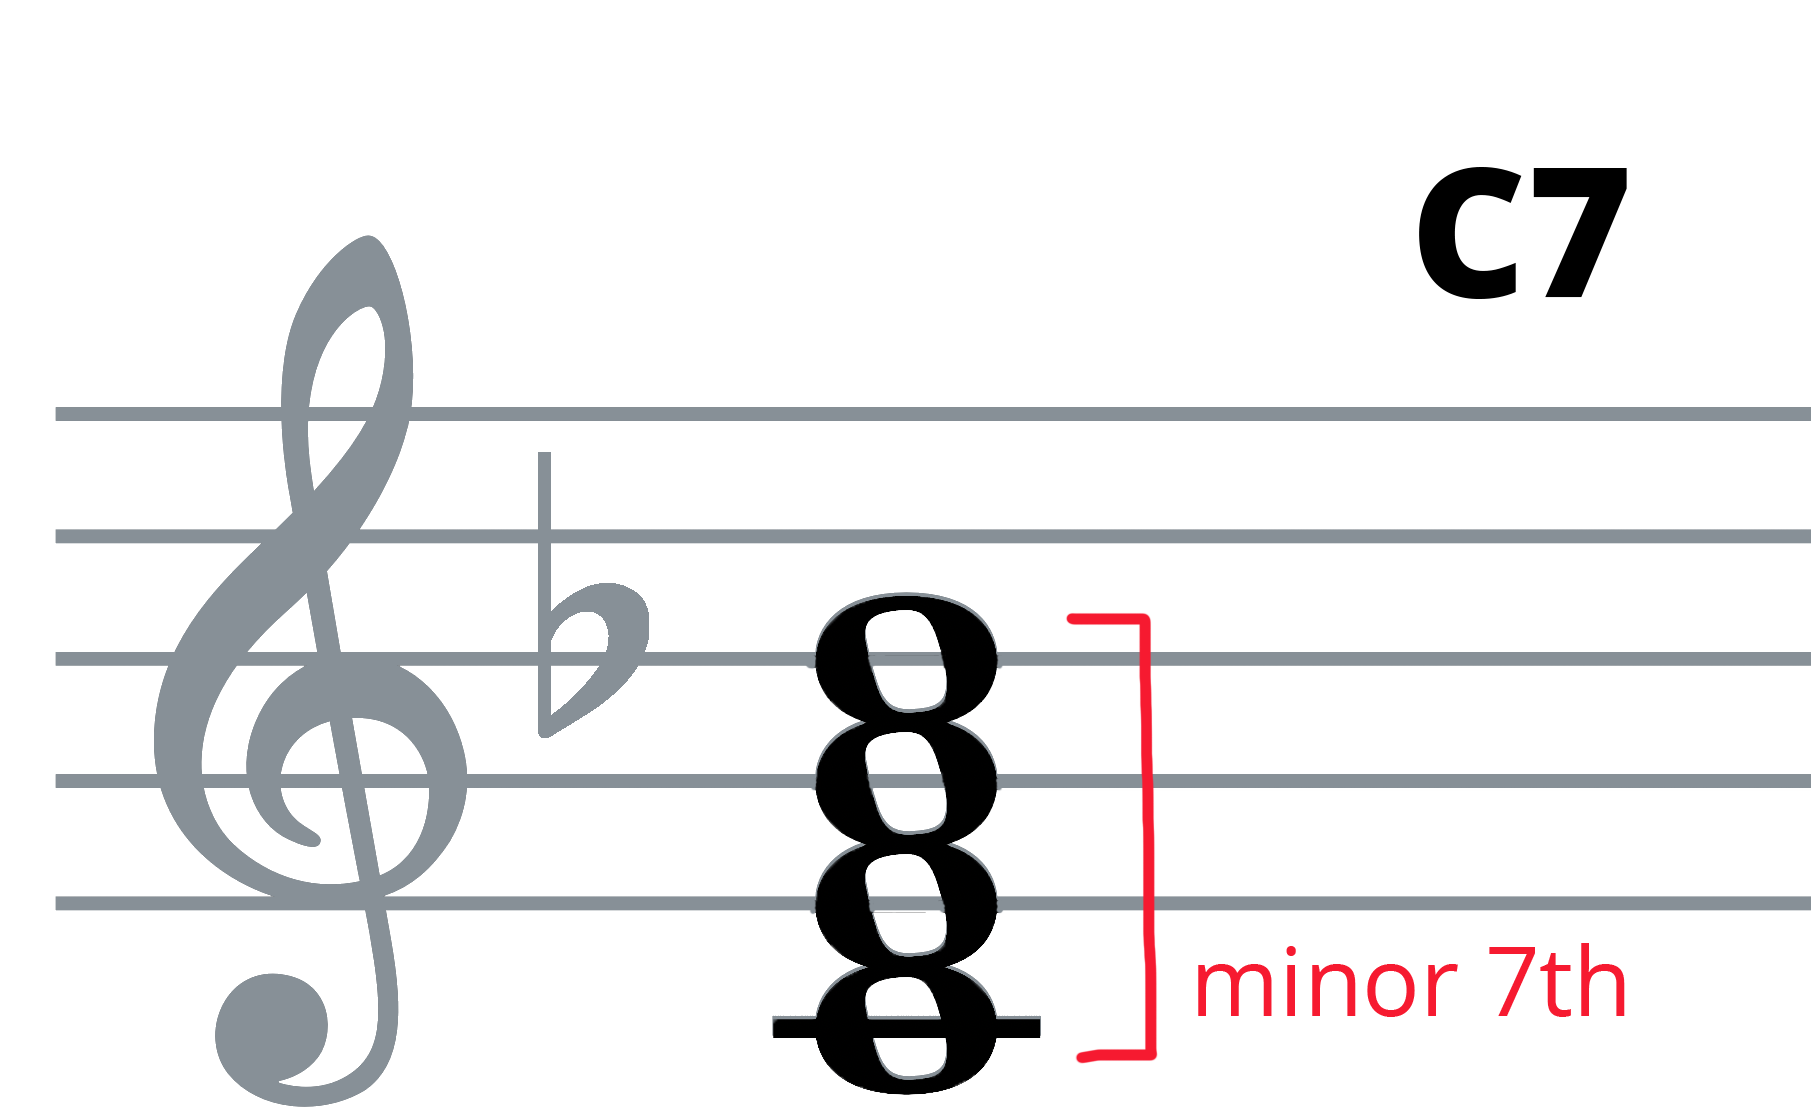 C7 piano chord on treble clef with minor 7th labelled between C and Bb.